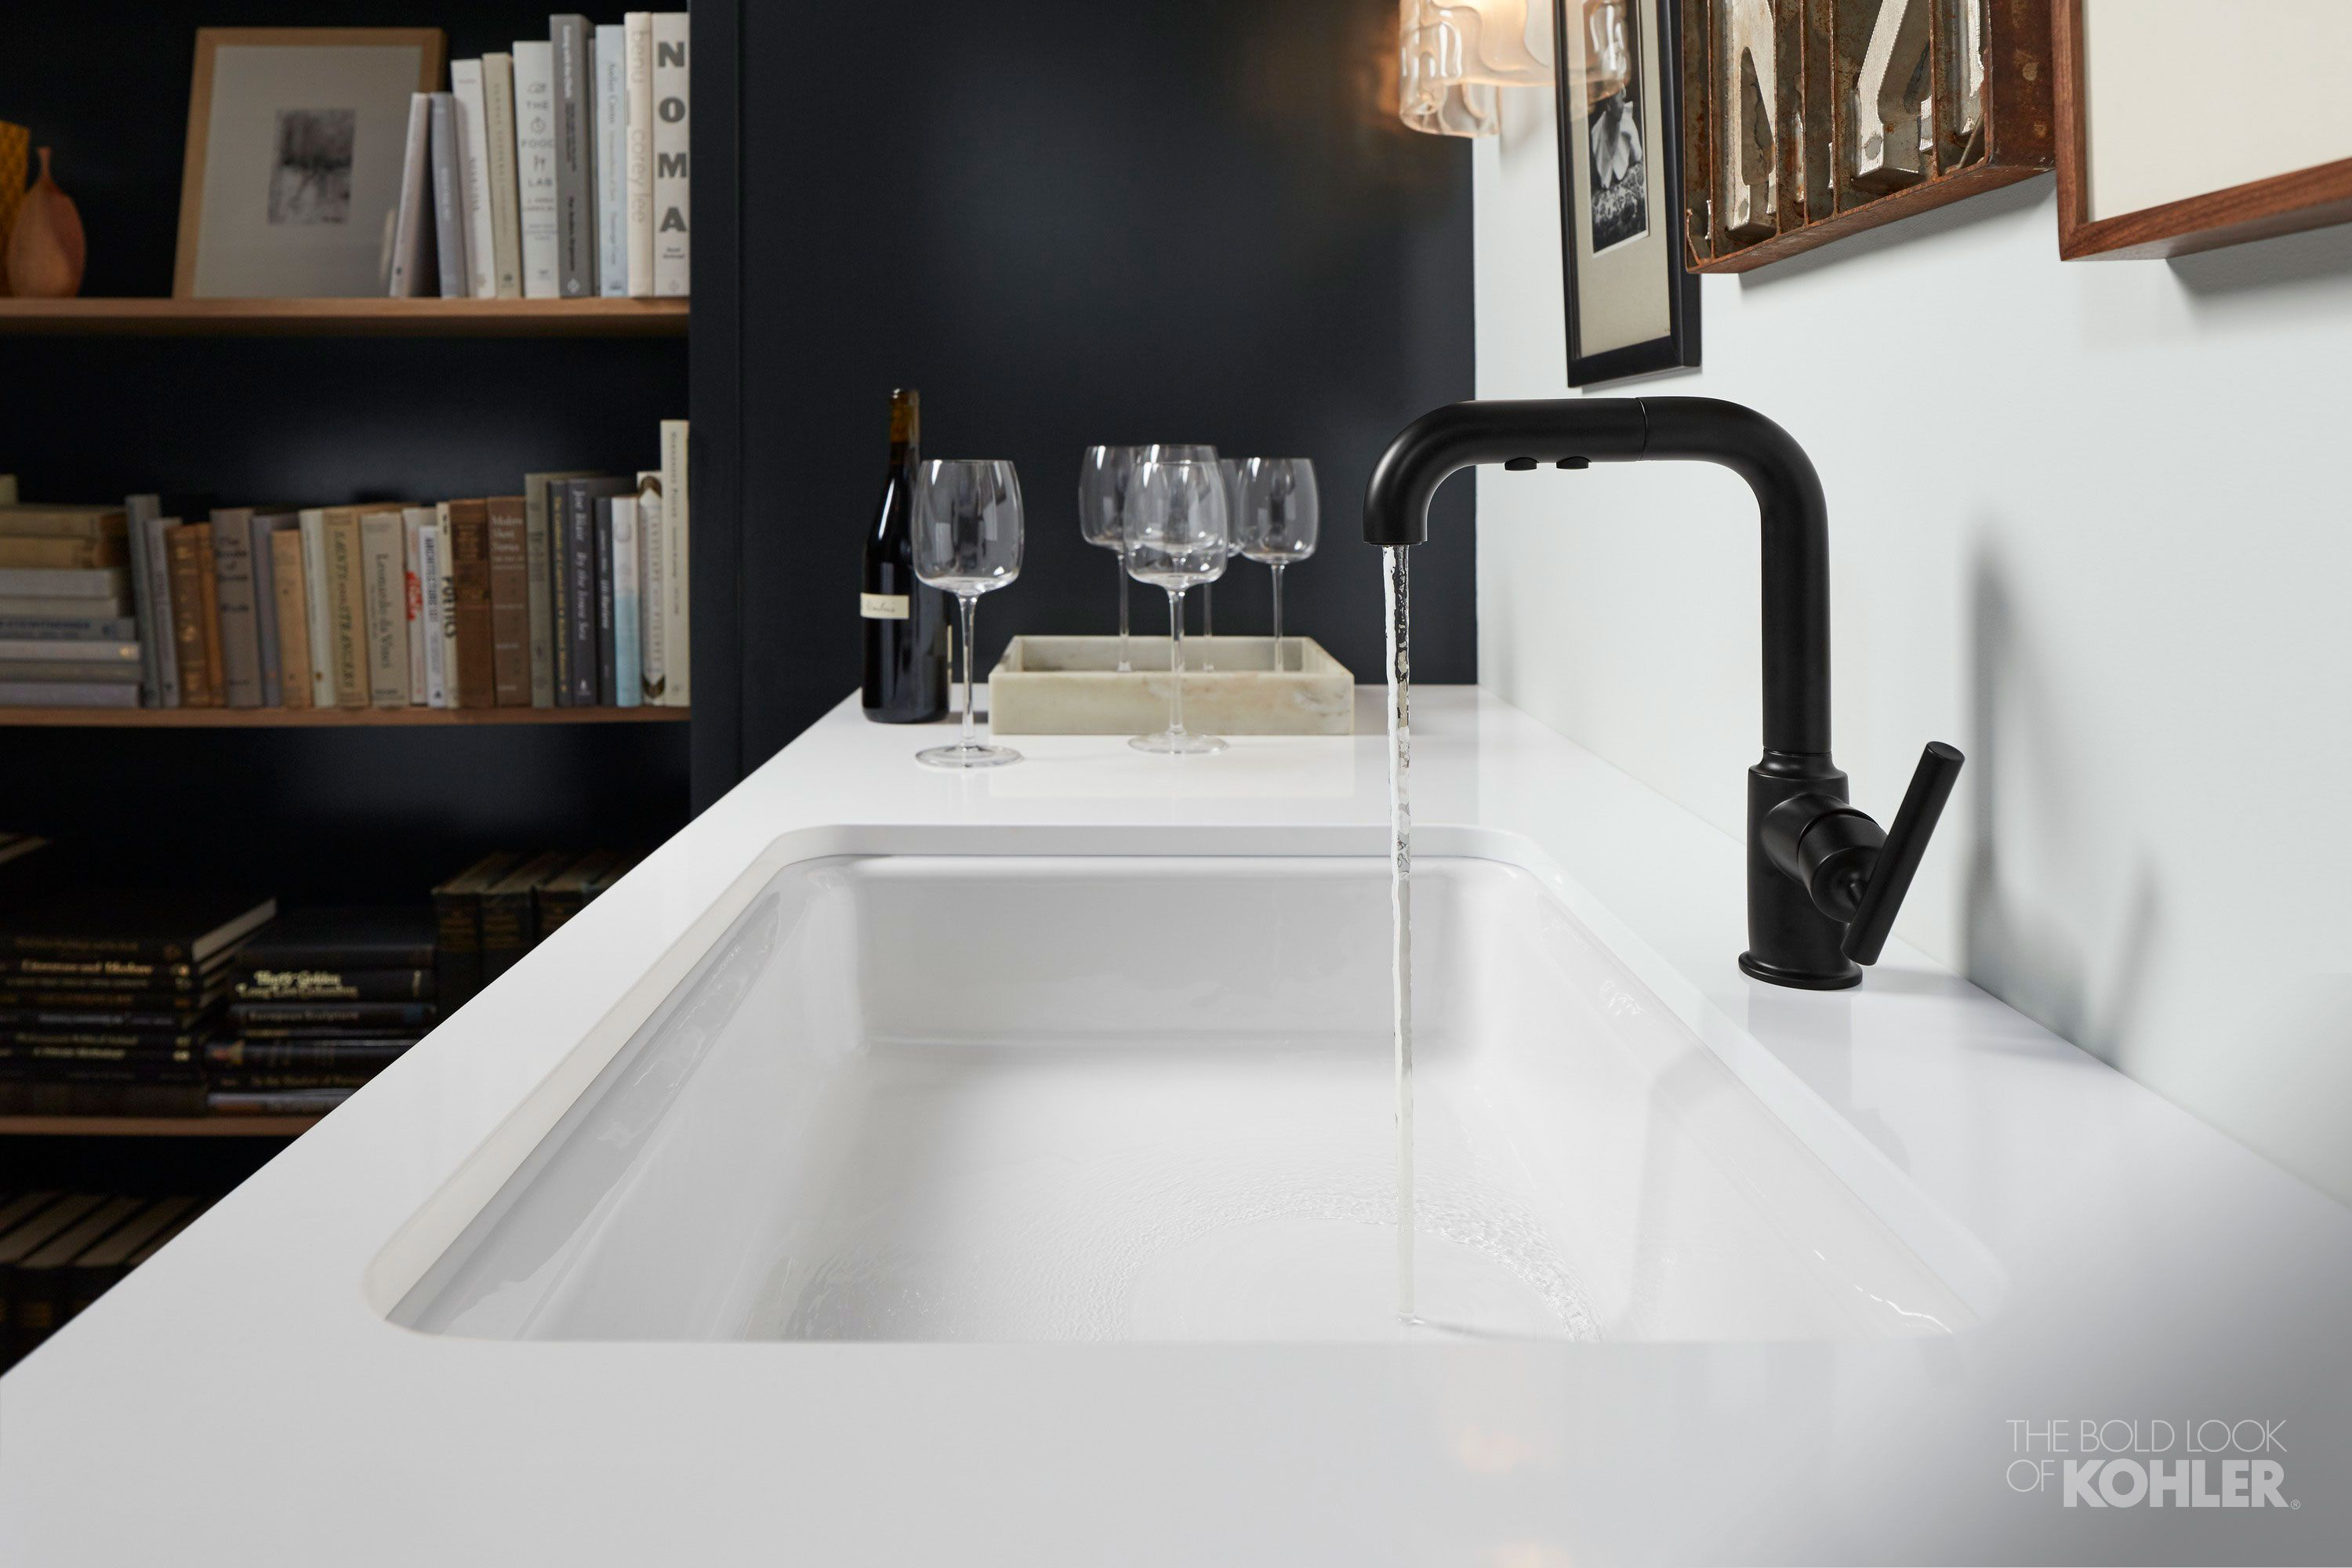 Lofty Living Kitchen | Pinterest | Bowl sink, Faucet and Sinks